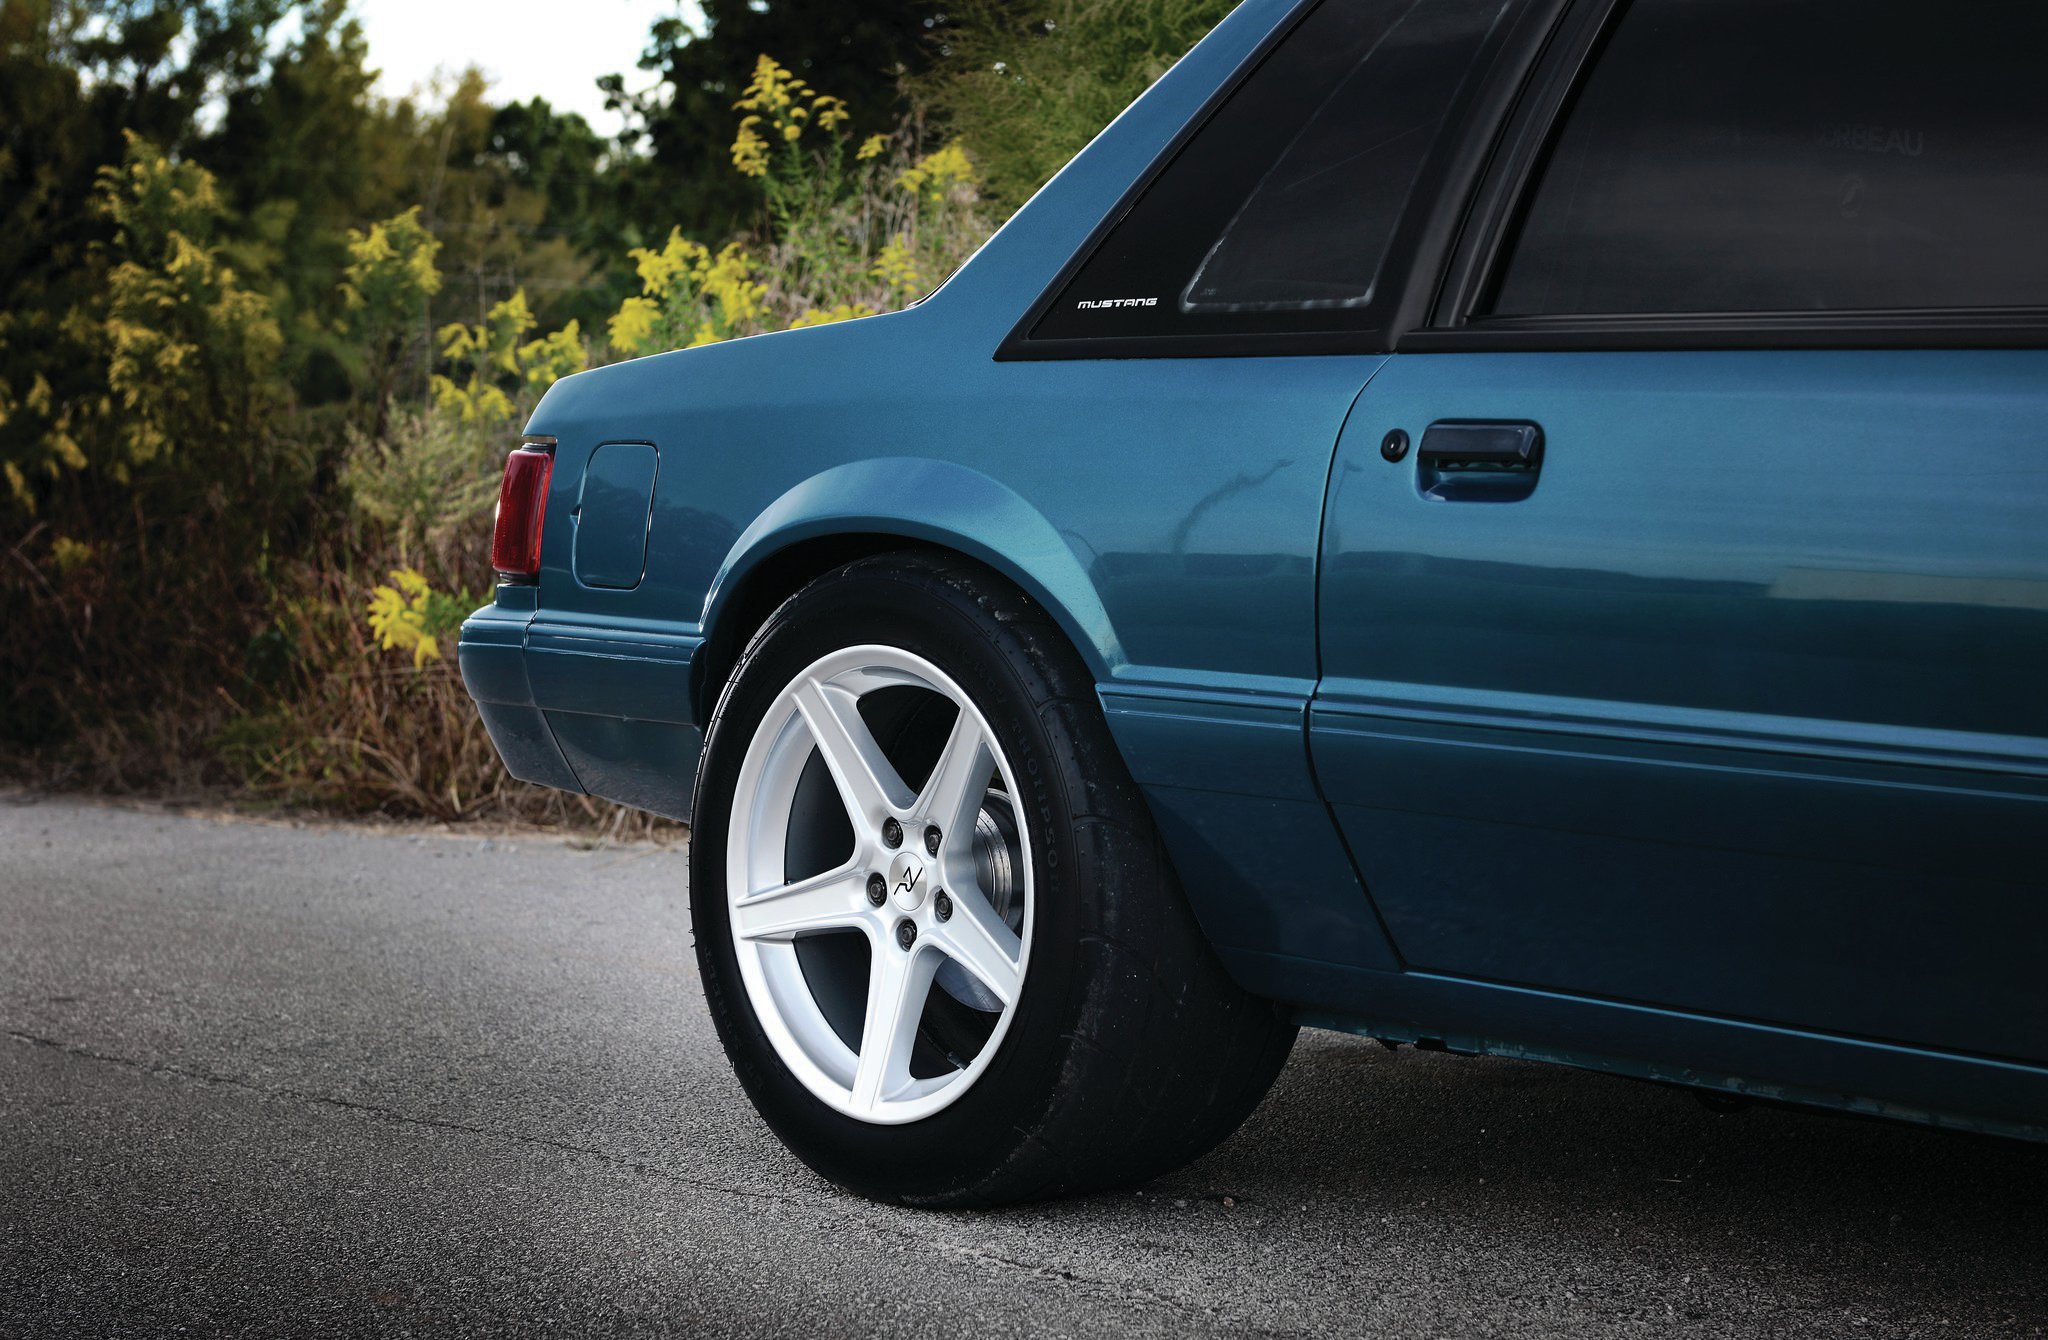 1993 Ford Mustang Lx Coupe Mickey Thompson Tire